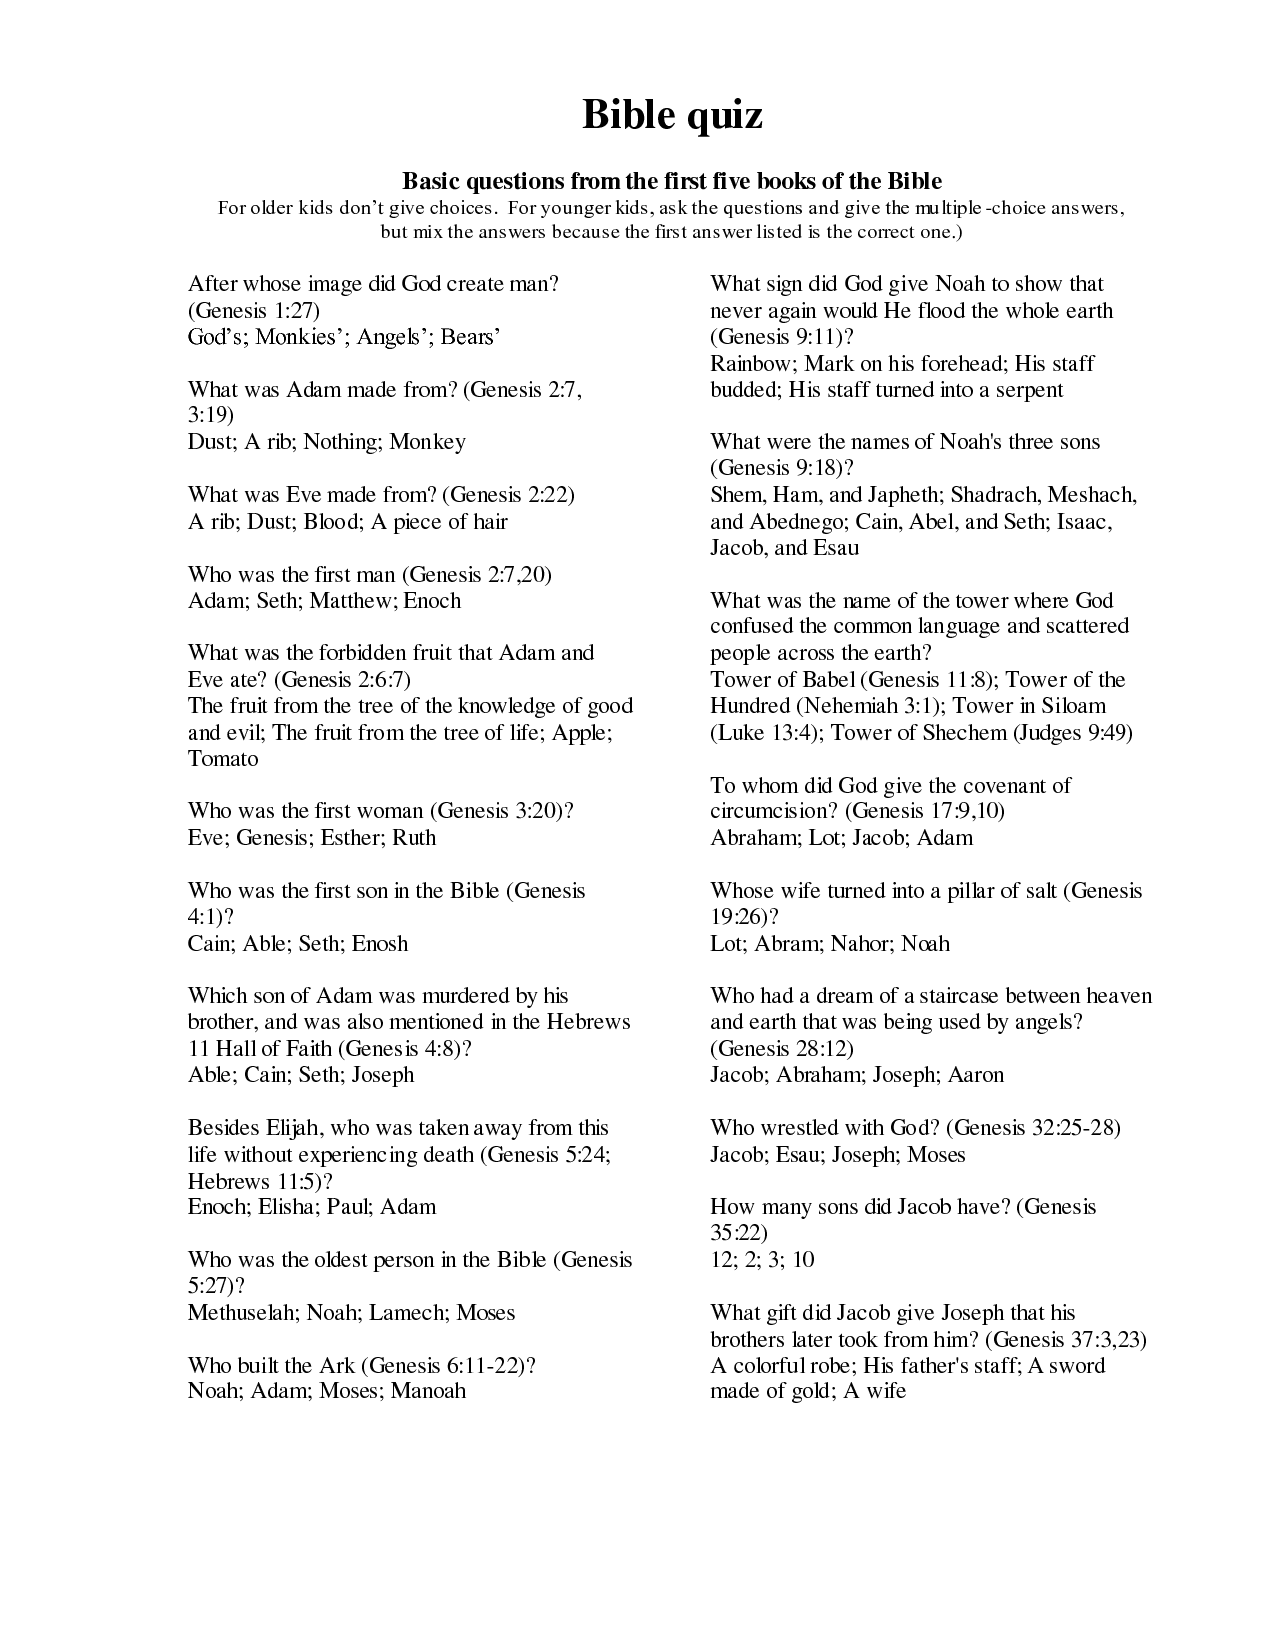 Bible Questions Worksheets